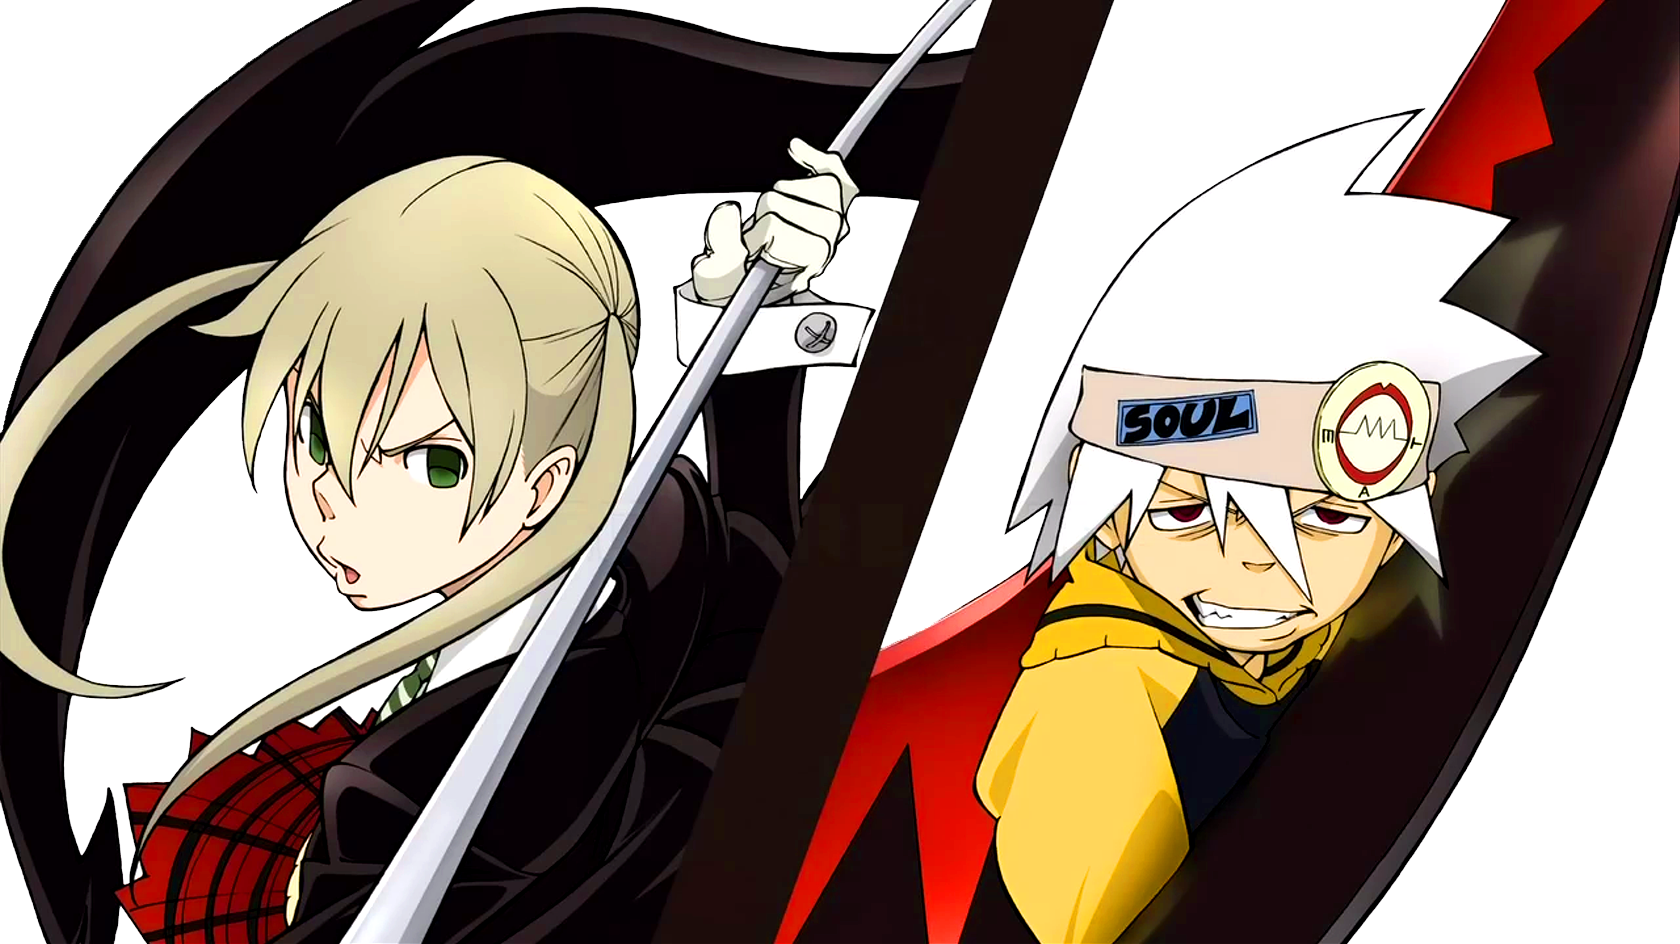 Soul Eater Wallpaper and Background Image | 1680x944 | ID ...